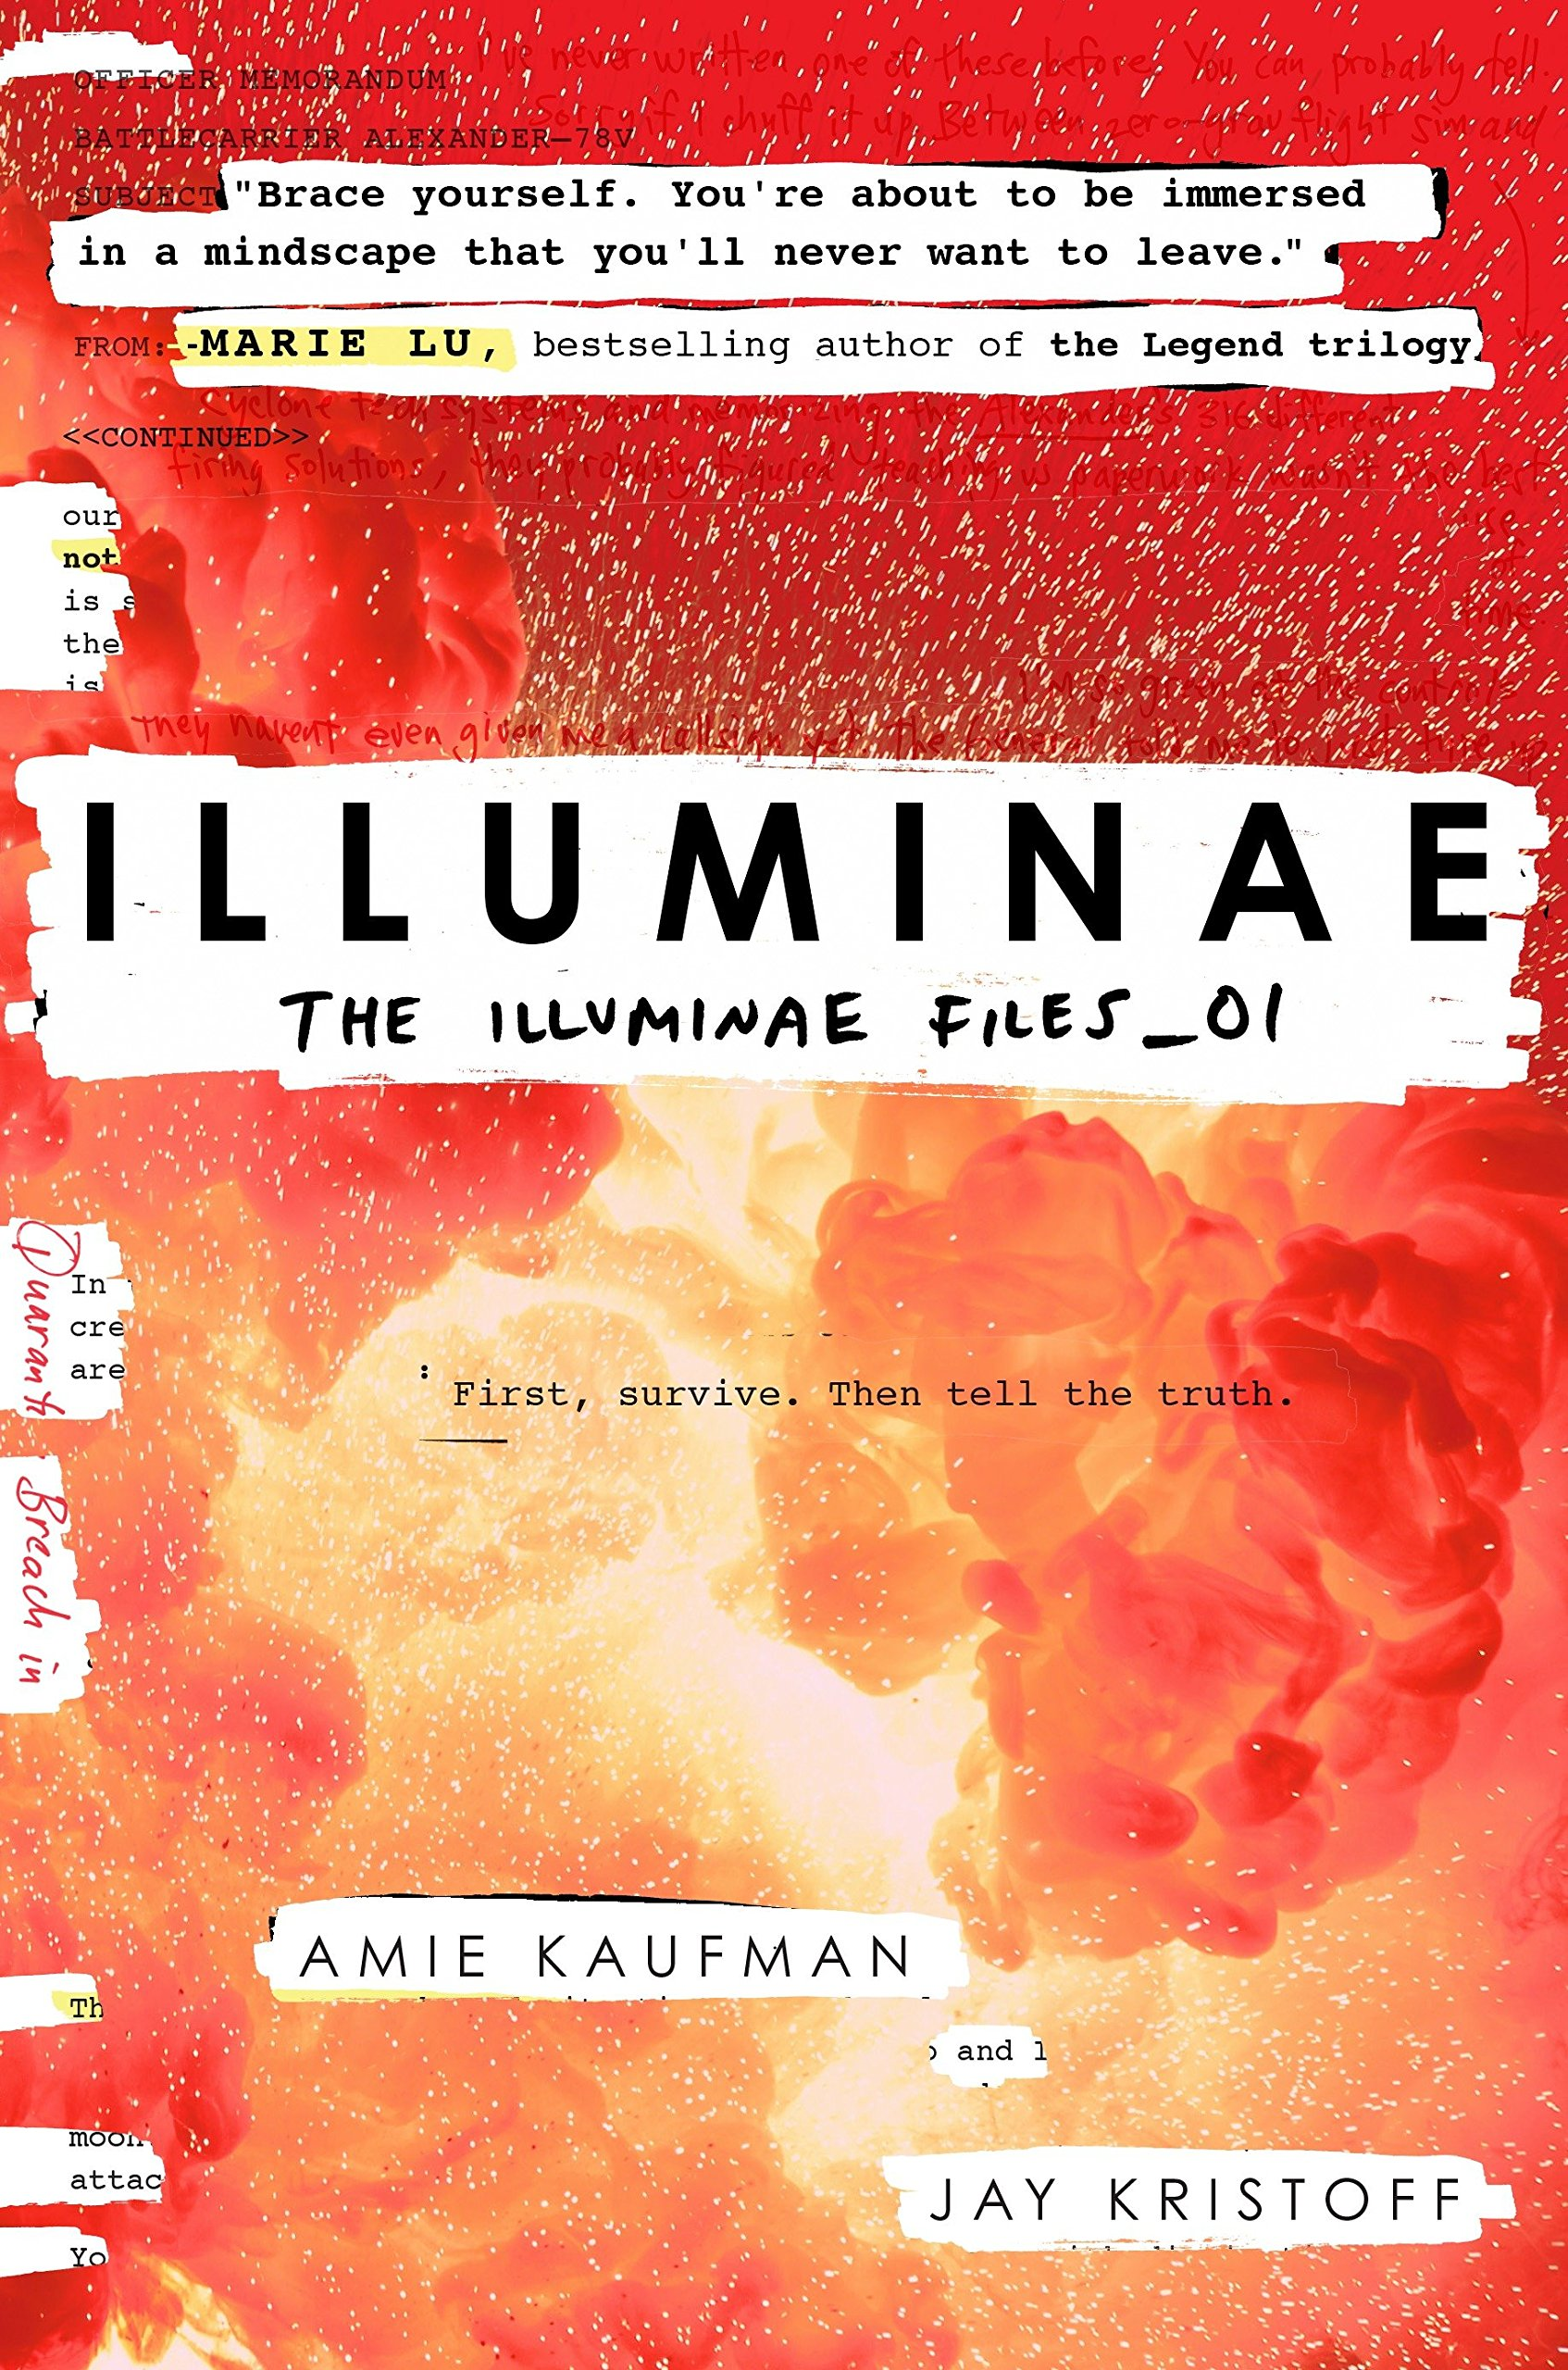 Image result for illuminae cover